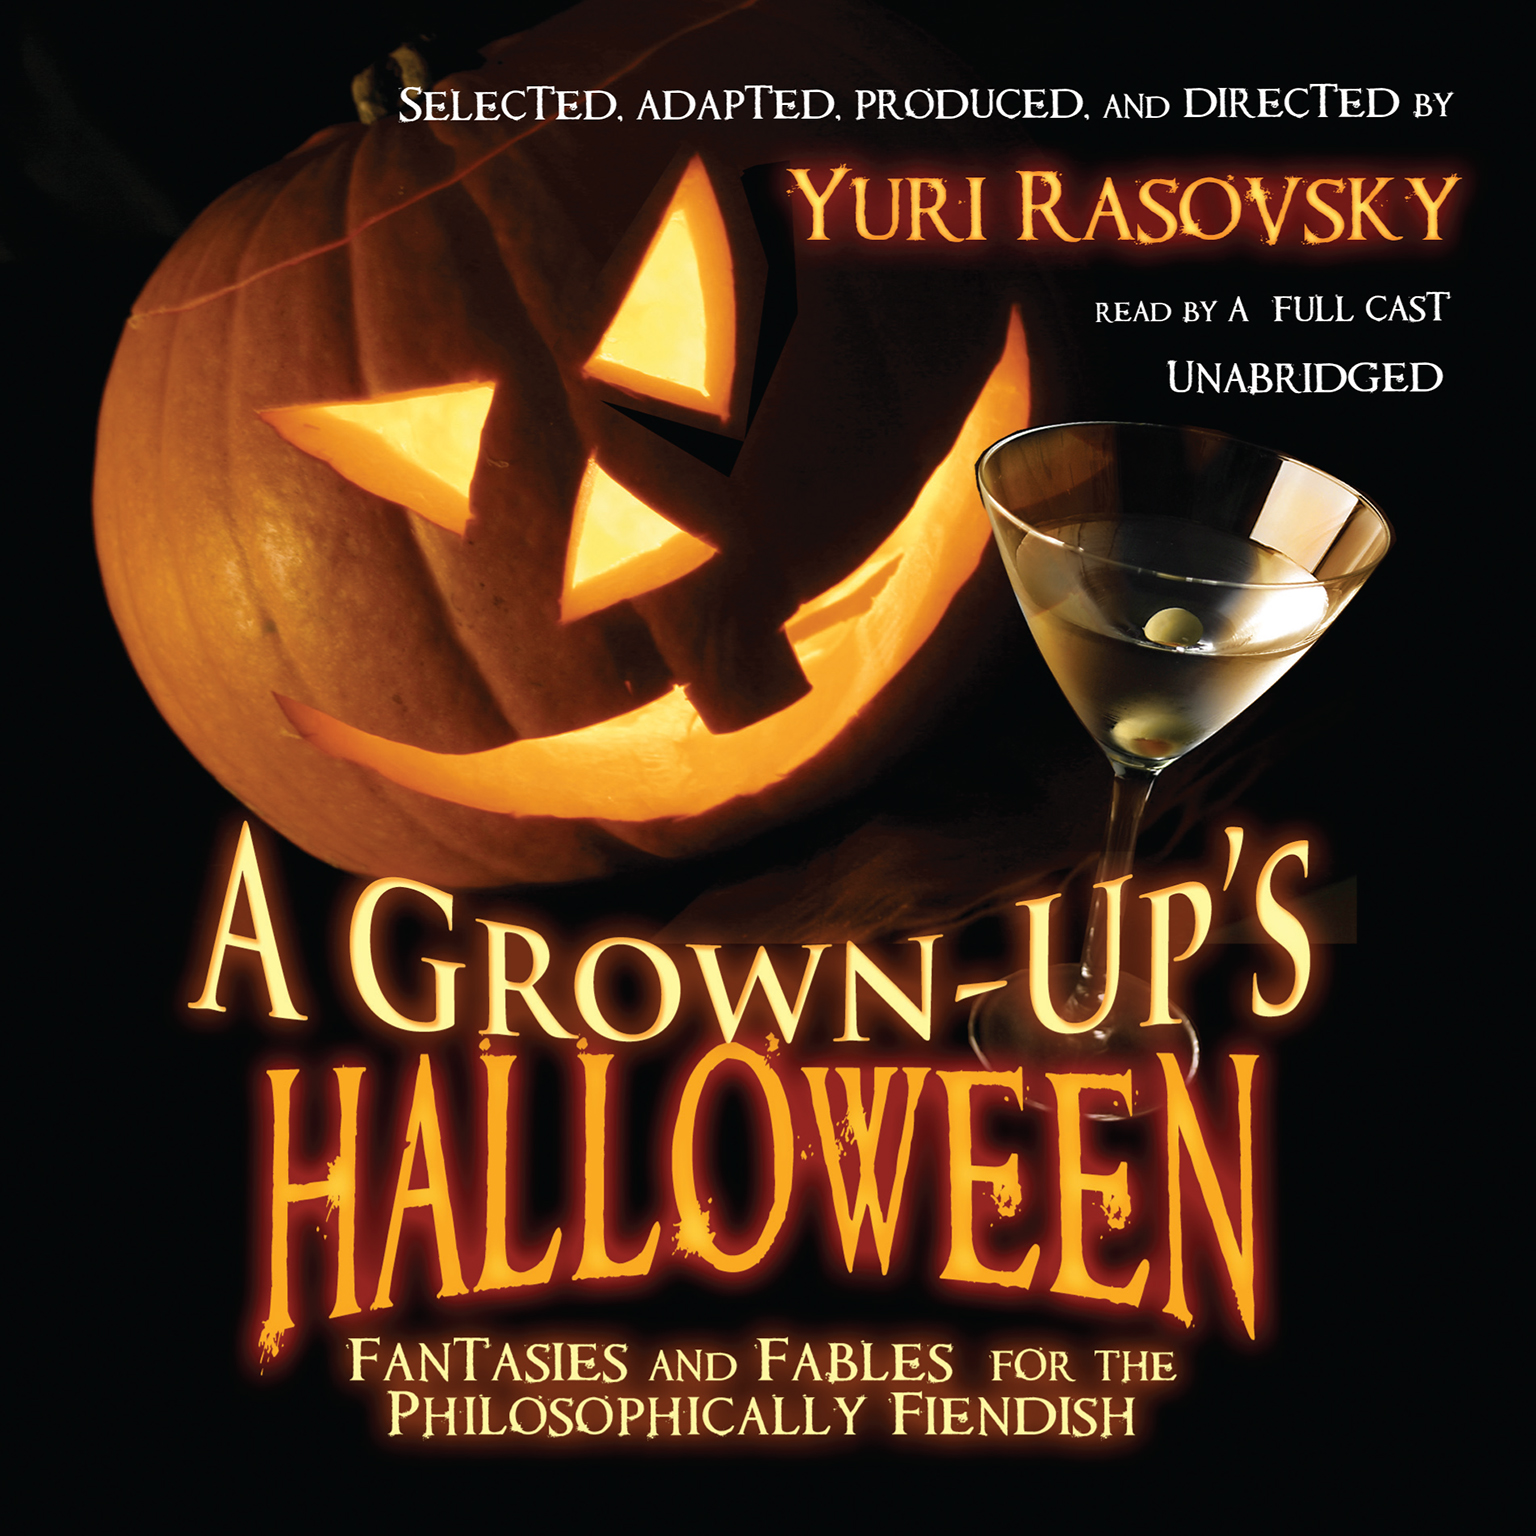 Printable A Grown-Up's Halloween: Fantasies and Fables for the Philosophically Fiendish Audiobook Cover Art